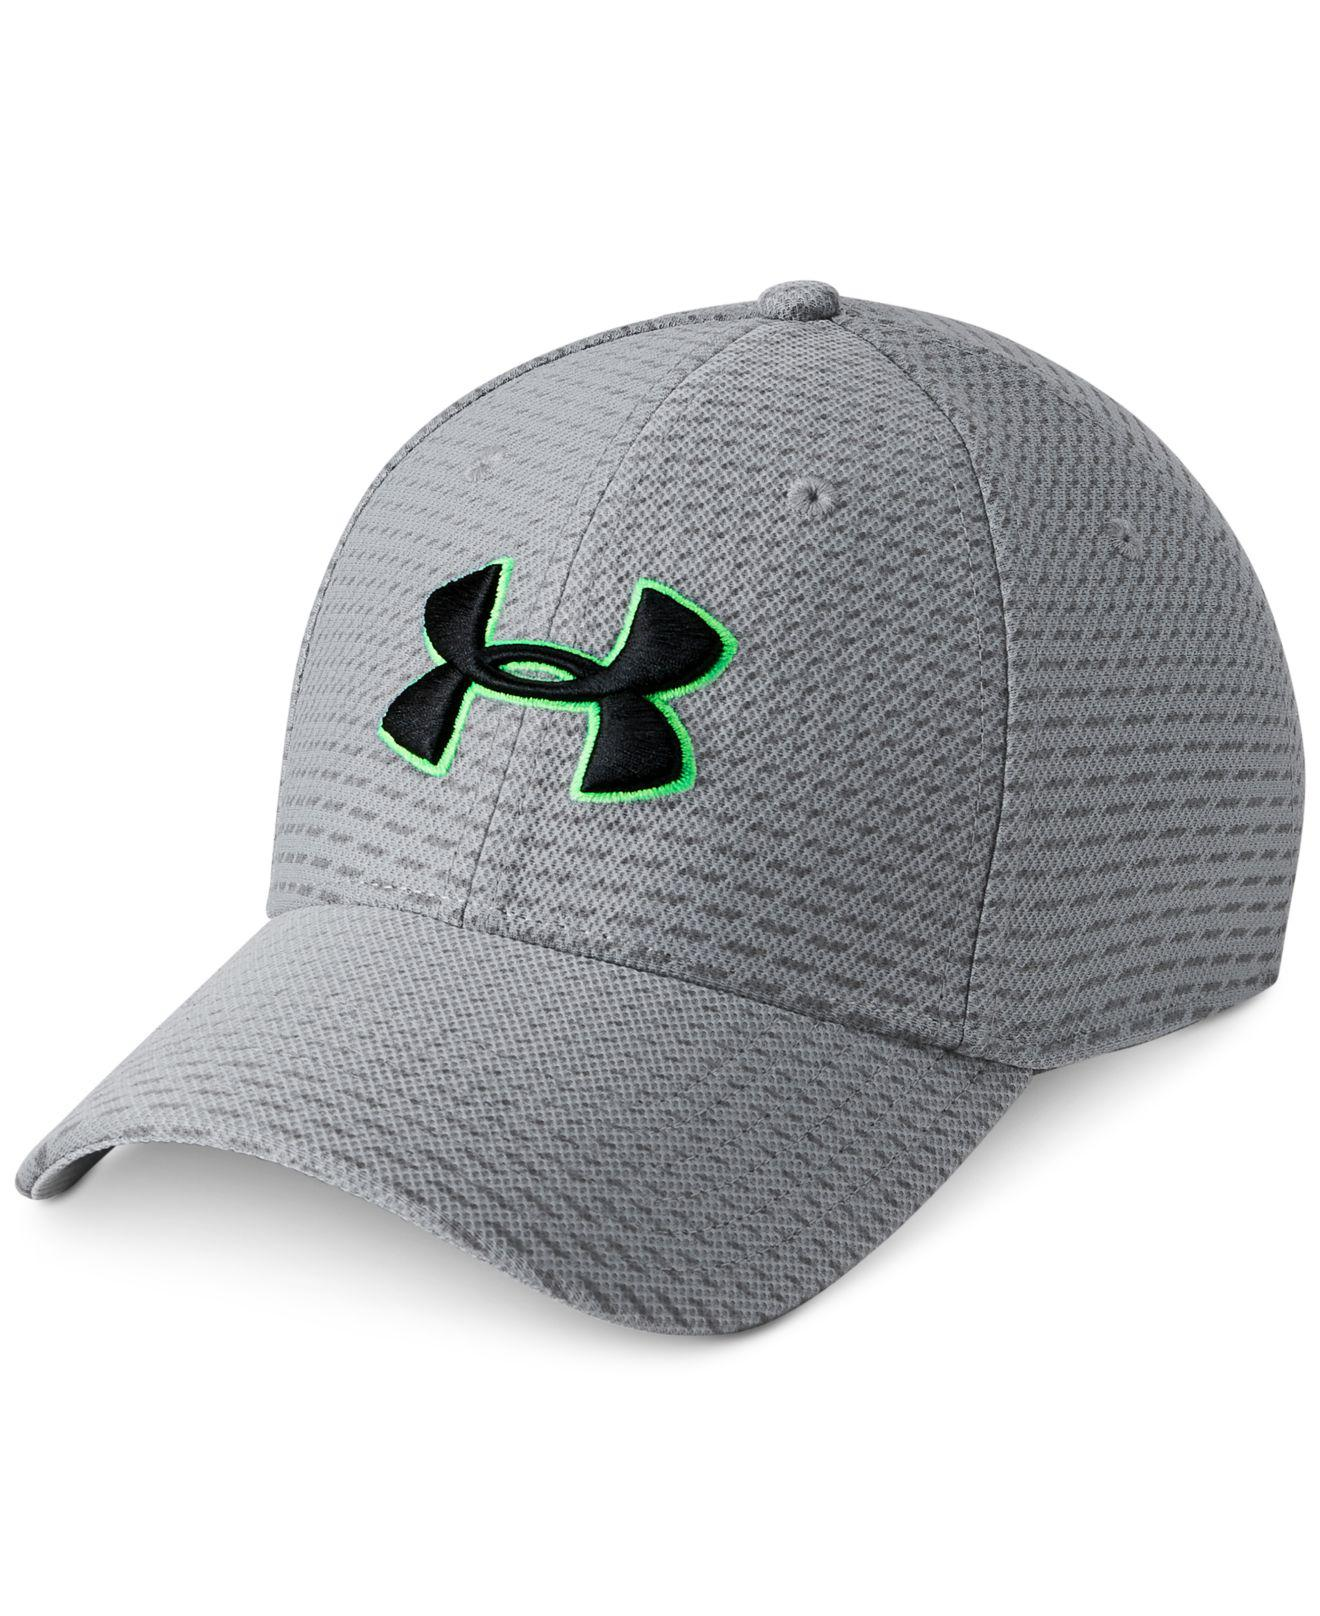 Lyst - Under Armour Blitzi Printed Hat in Gray for Men - Save 28.0% 84fad8364bd6